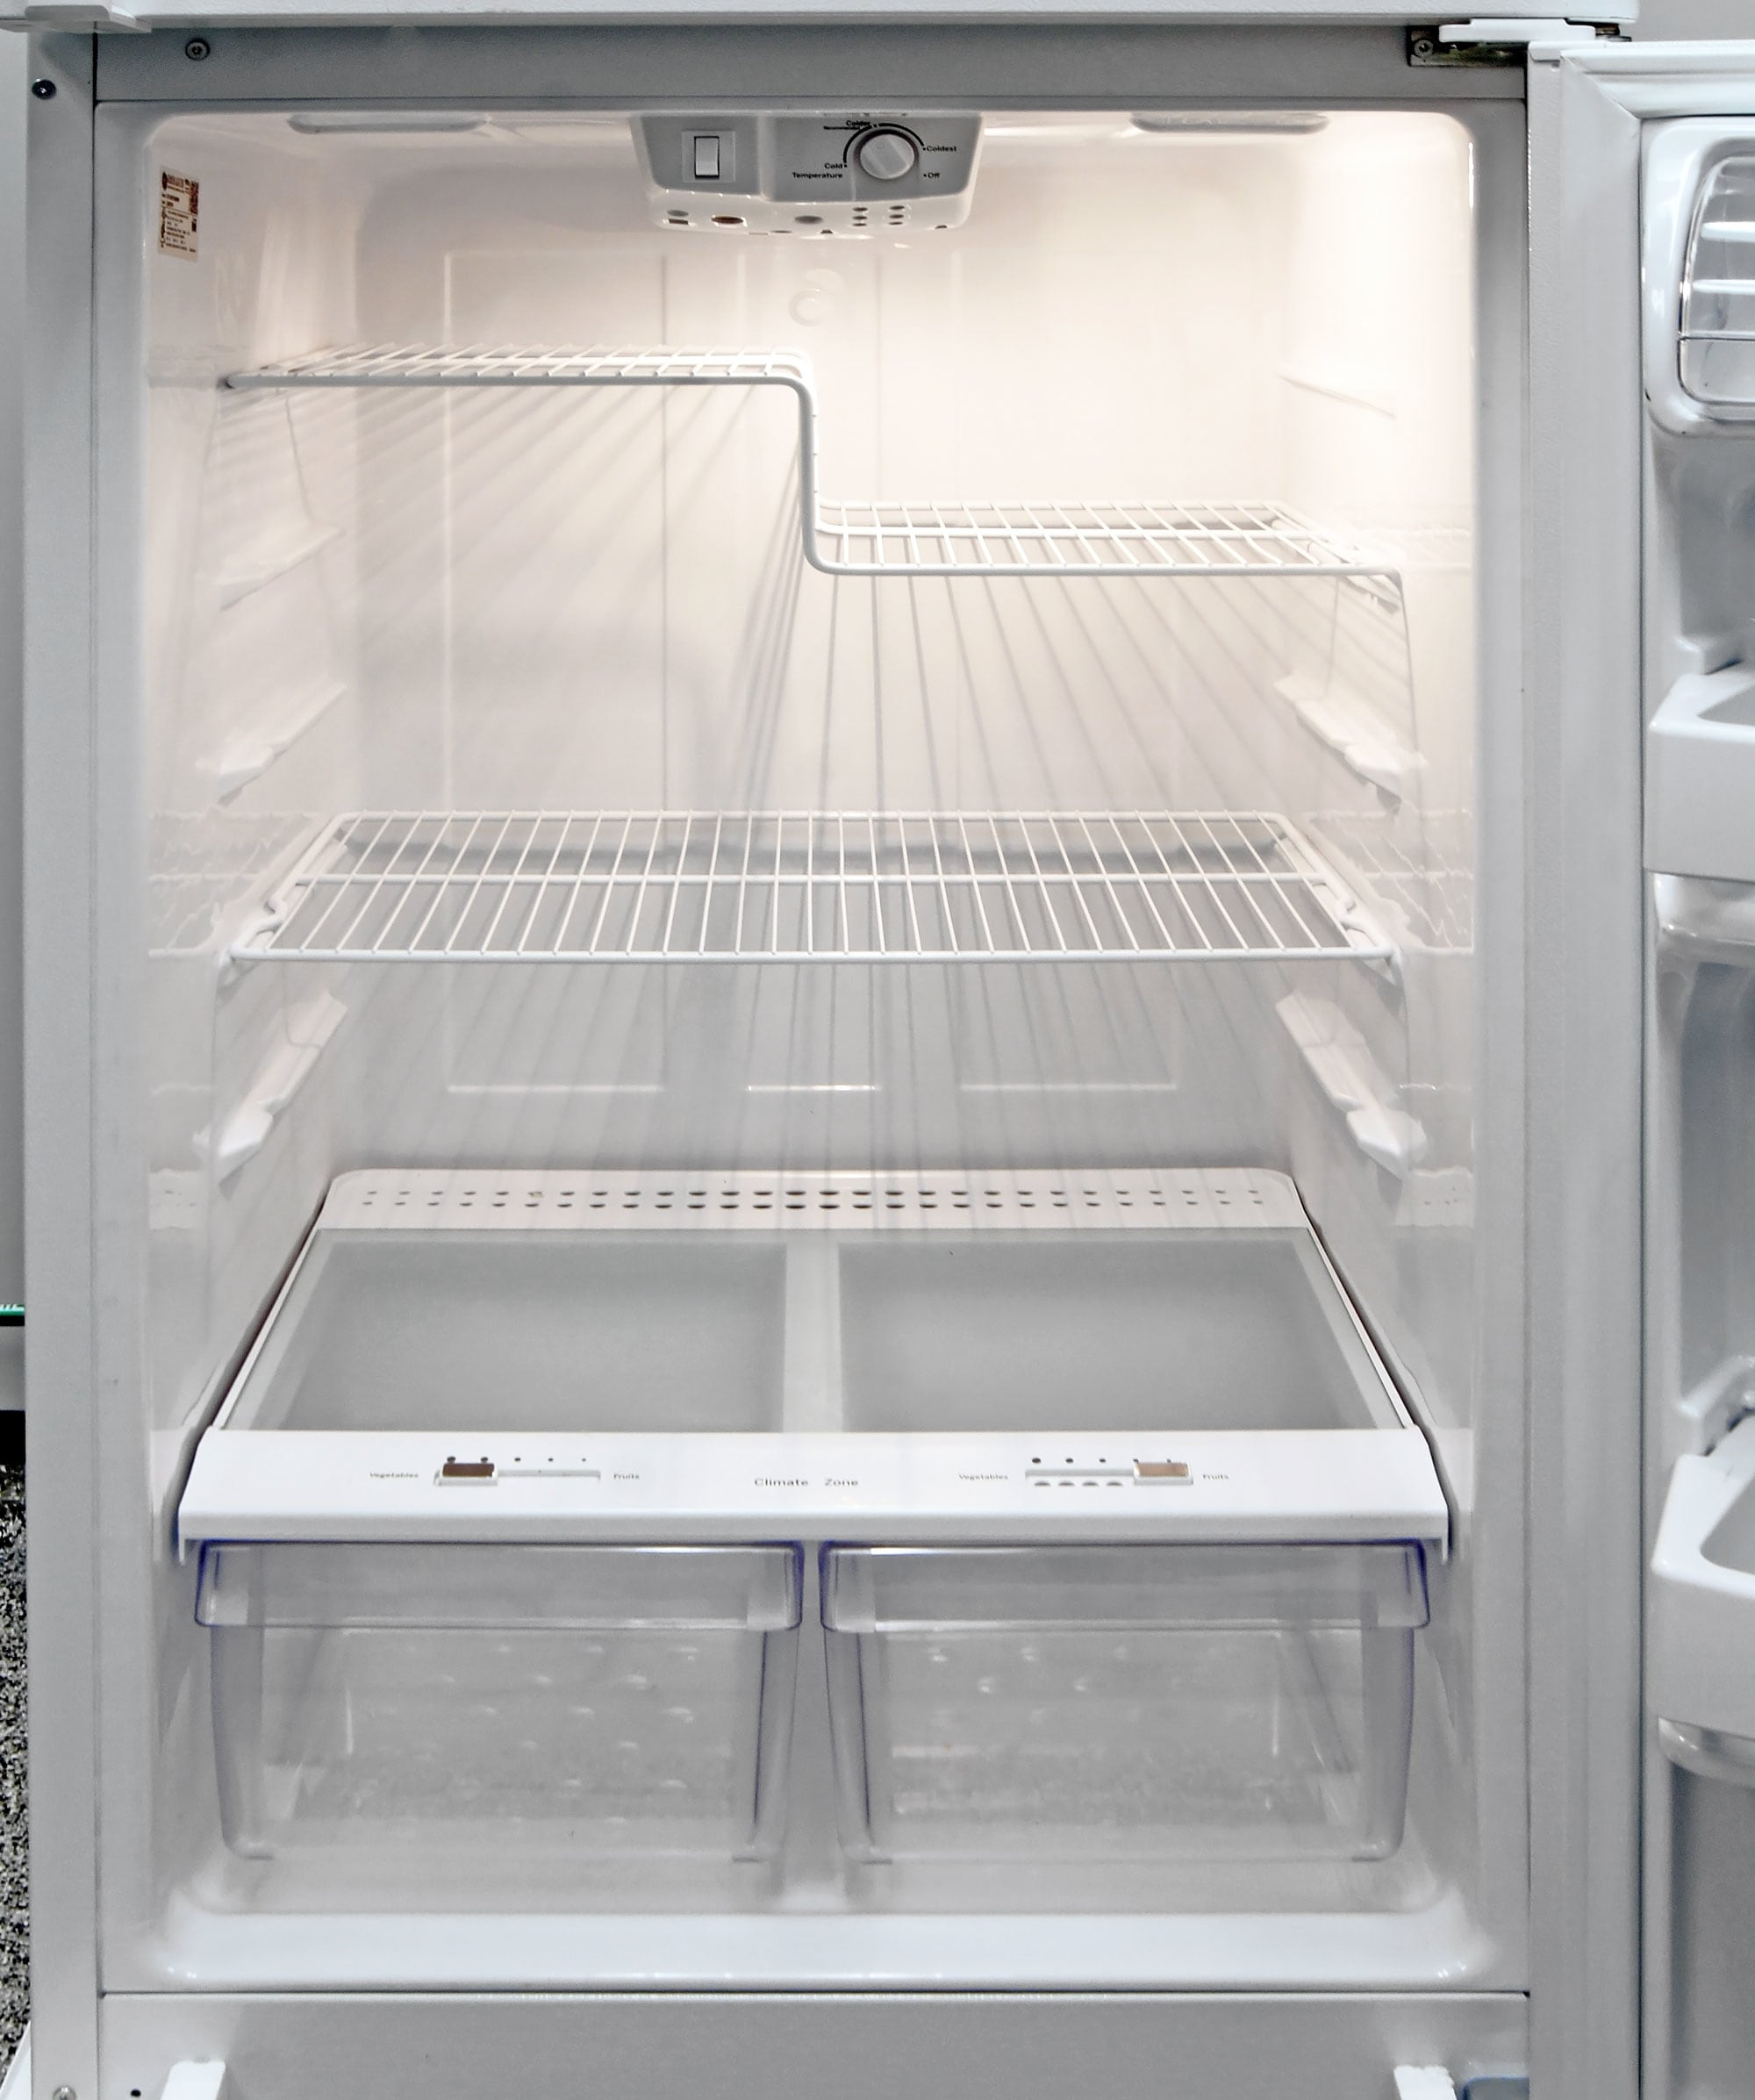 Ge Gts16dthww Refrigerator Review